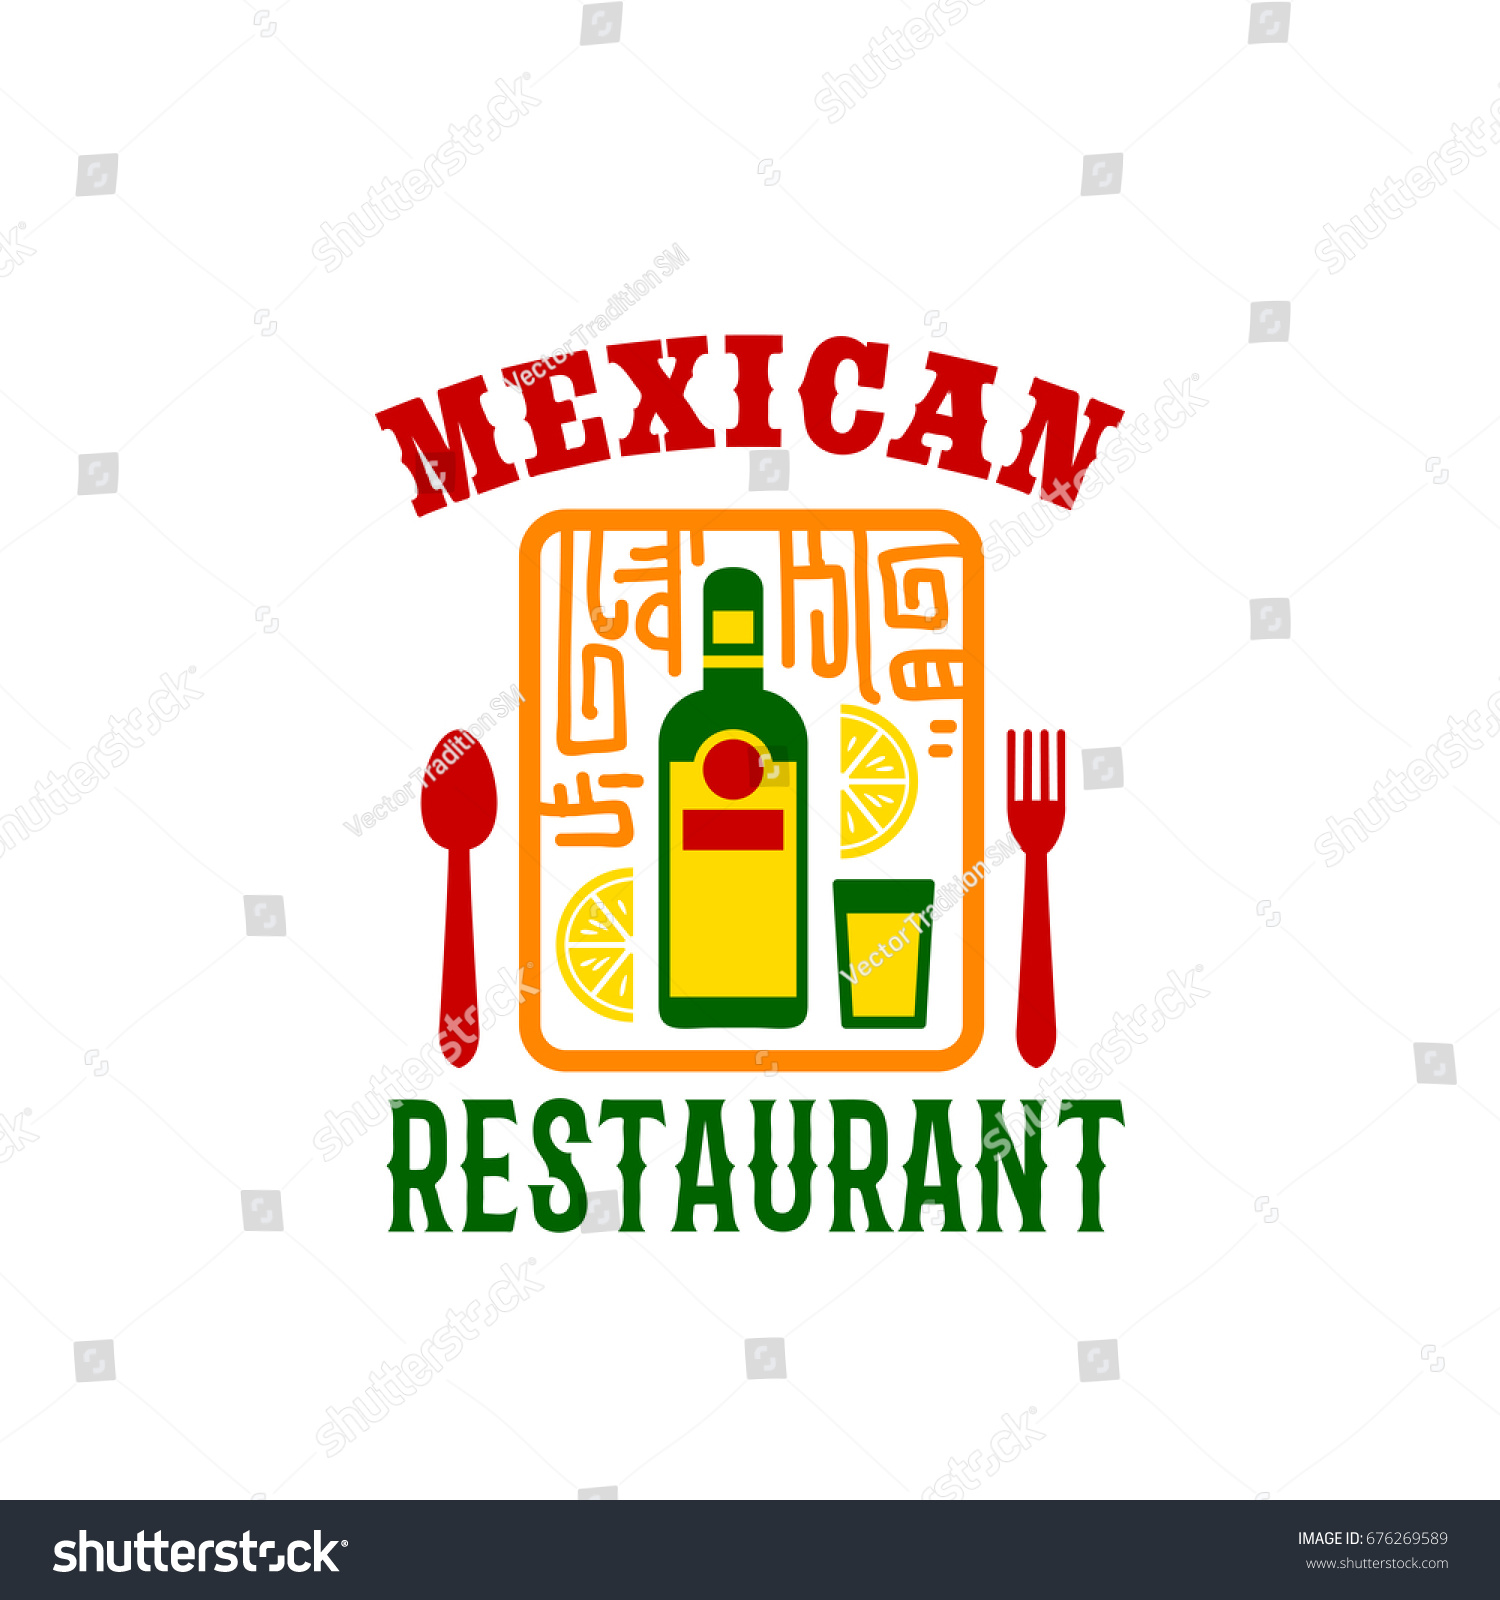 Mexican Restaurant Icon Tequila Bottle Lime Stock Vector Royalty